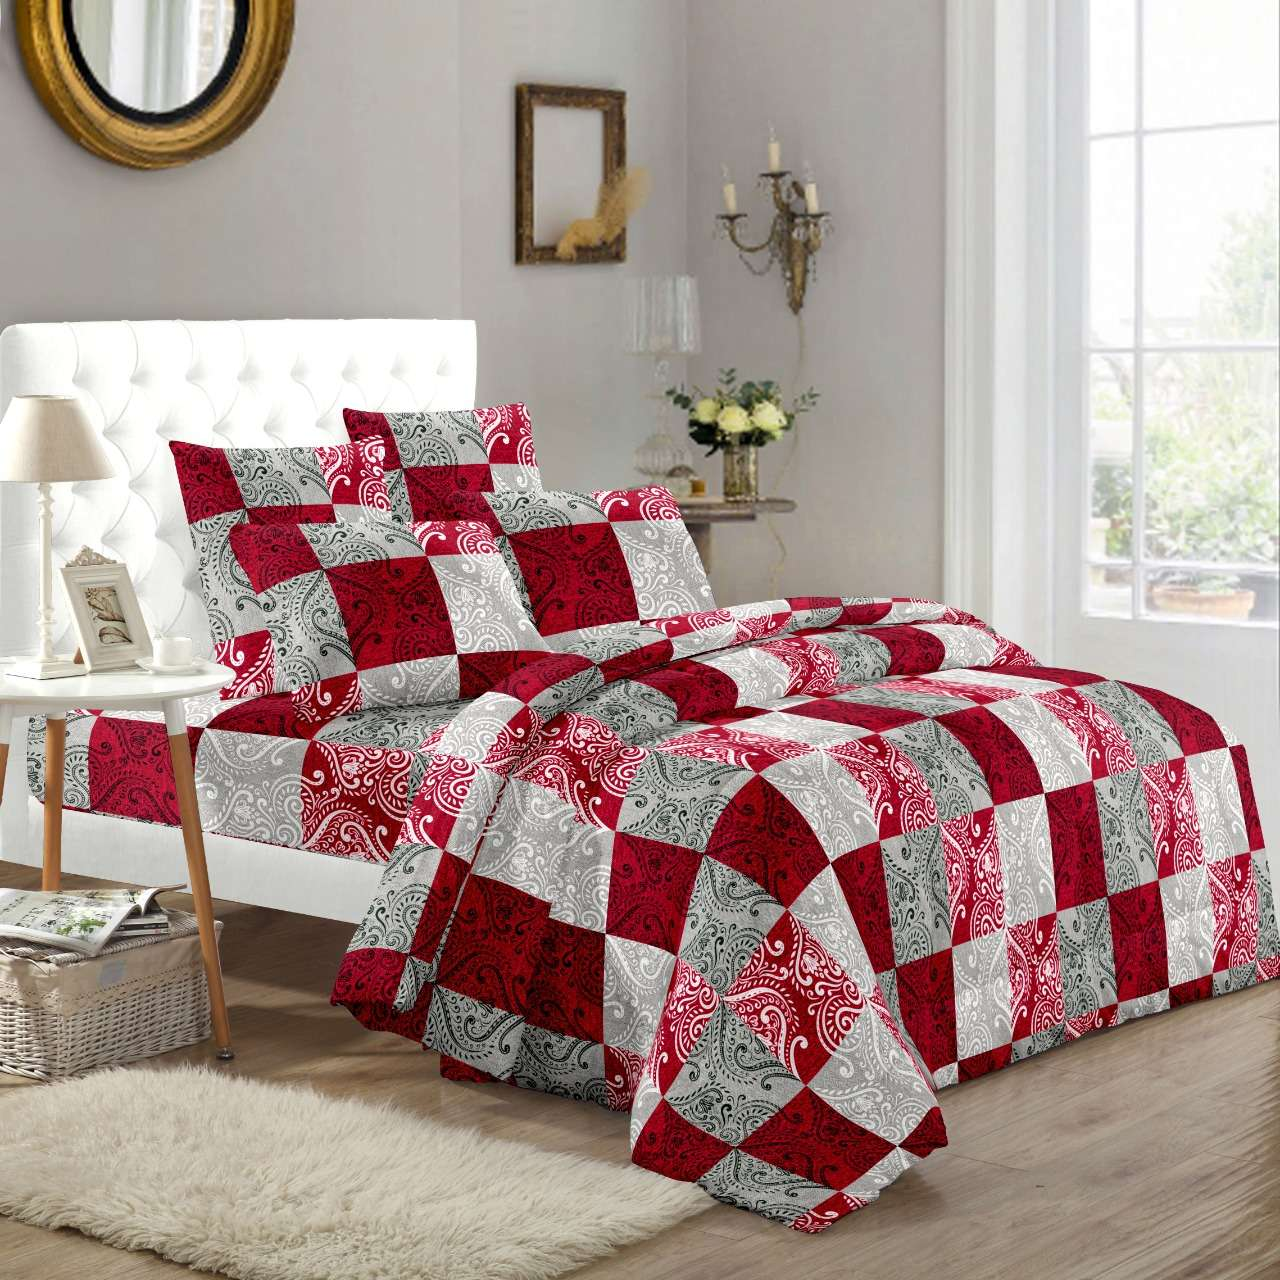 solitaire part 2 soft pure cotton colorful printed king size bedsheets with pillow cover